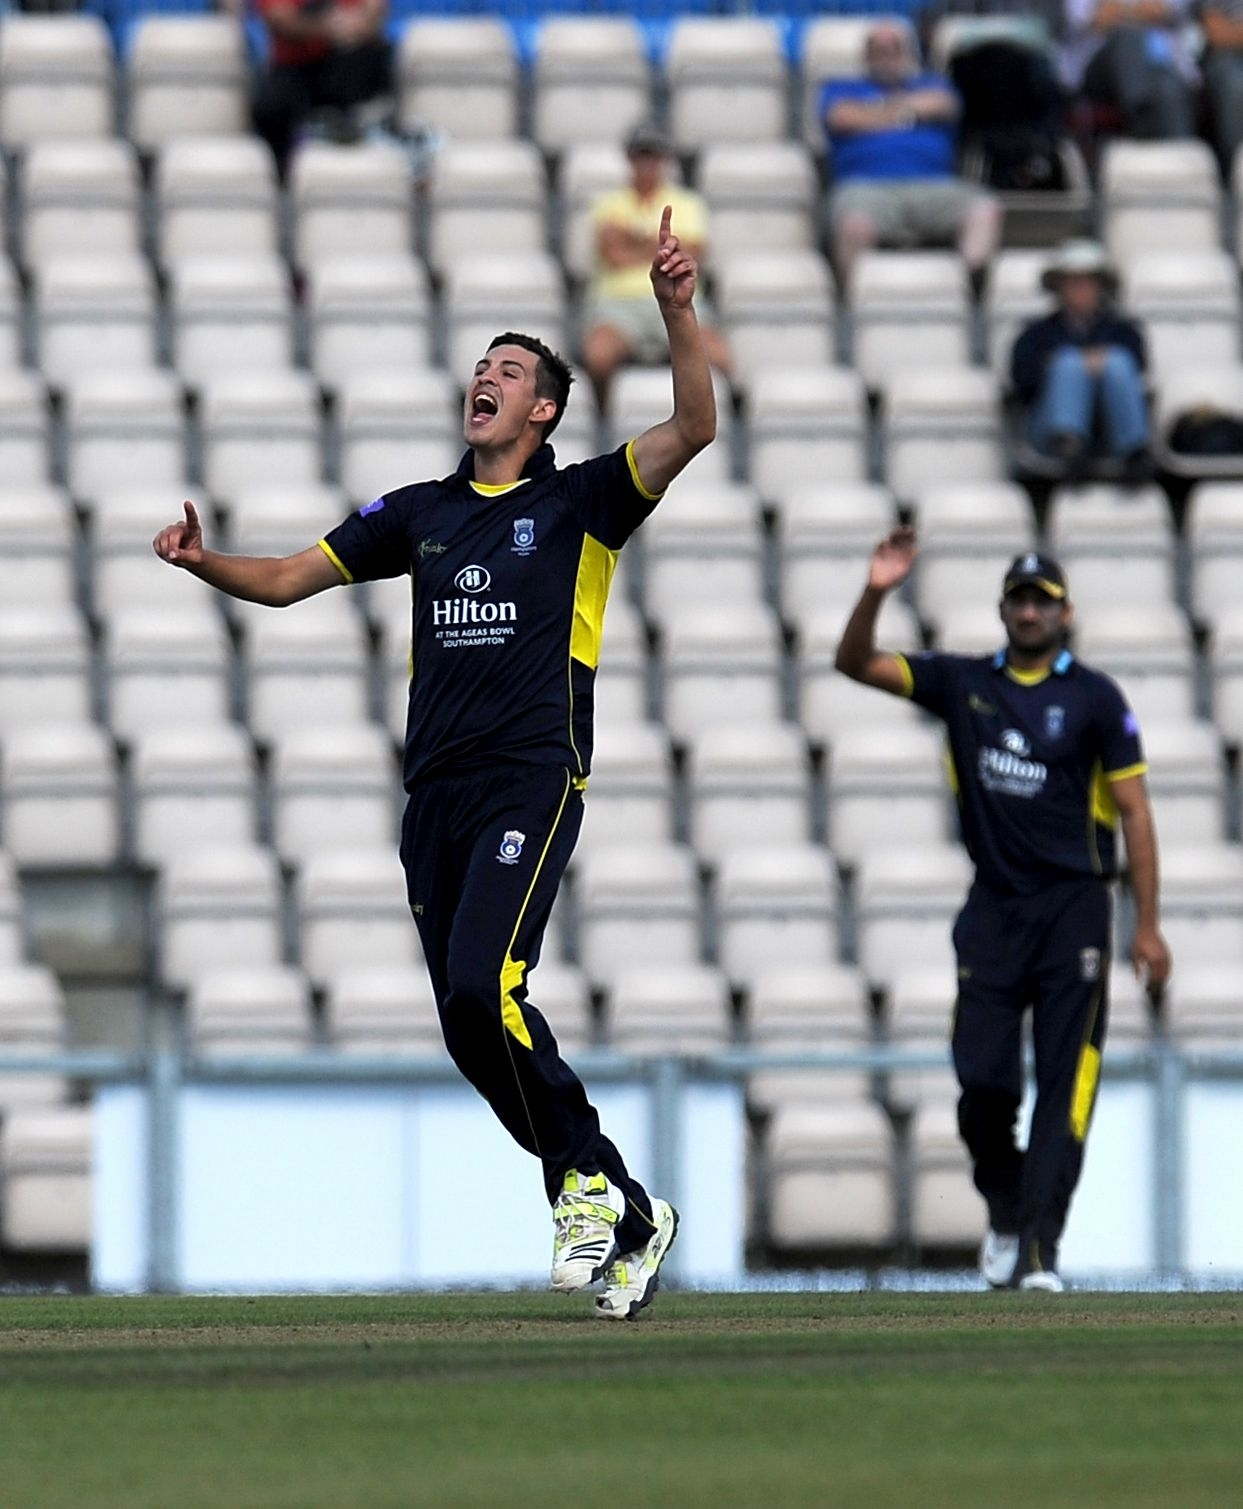 Basingstoke bowler Chris Wood